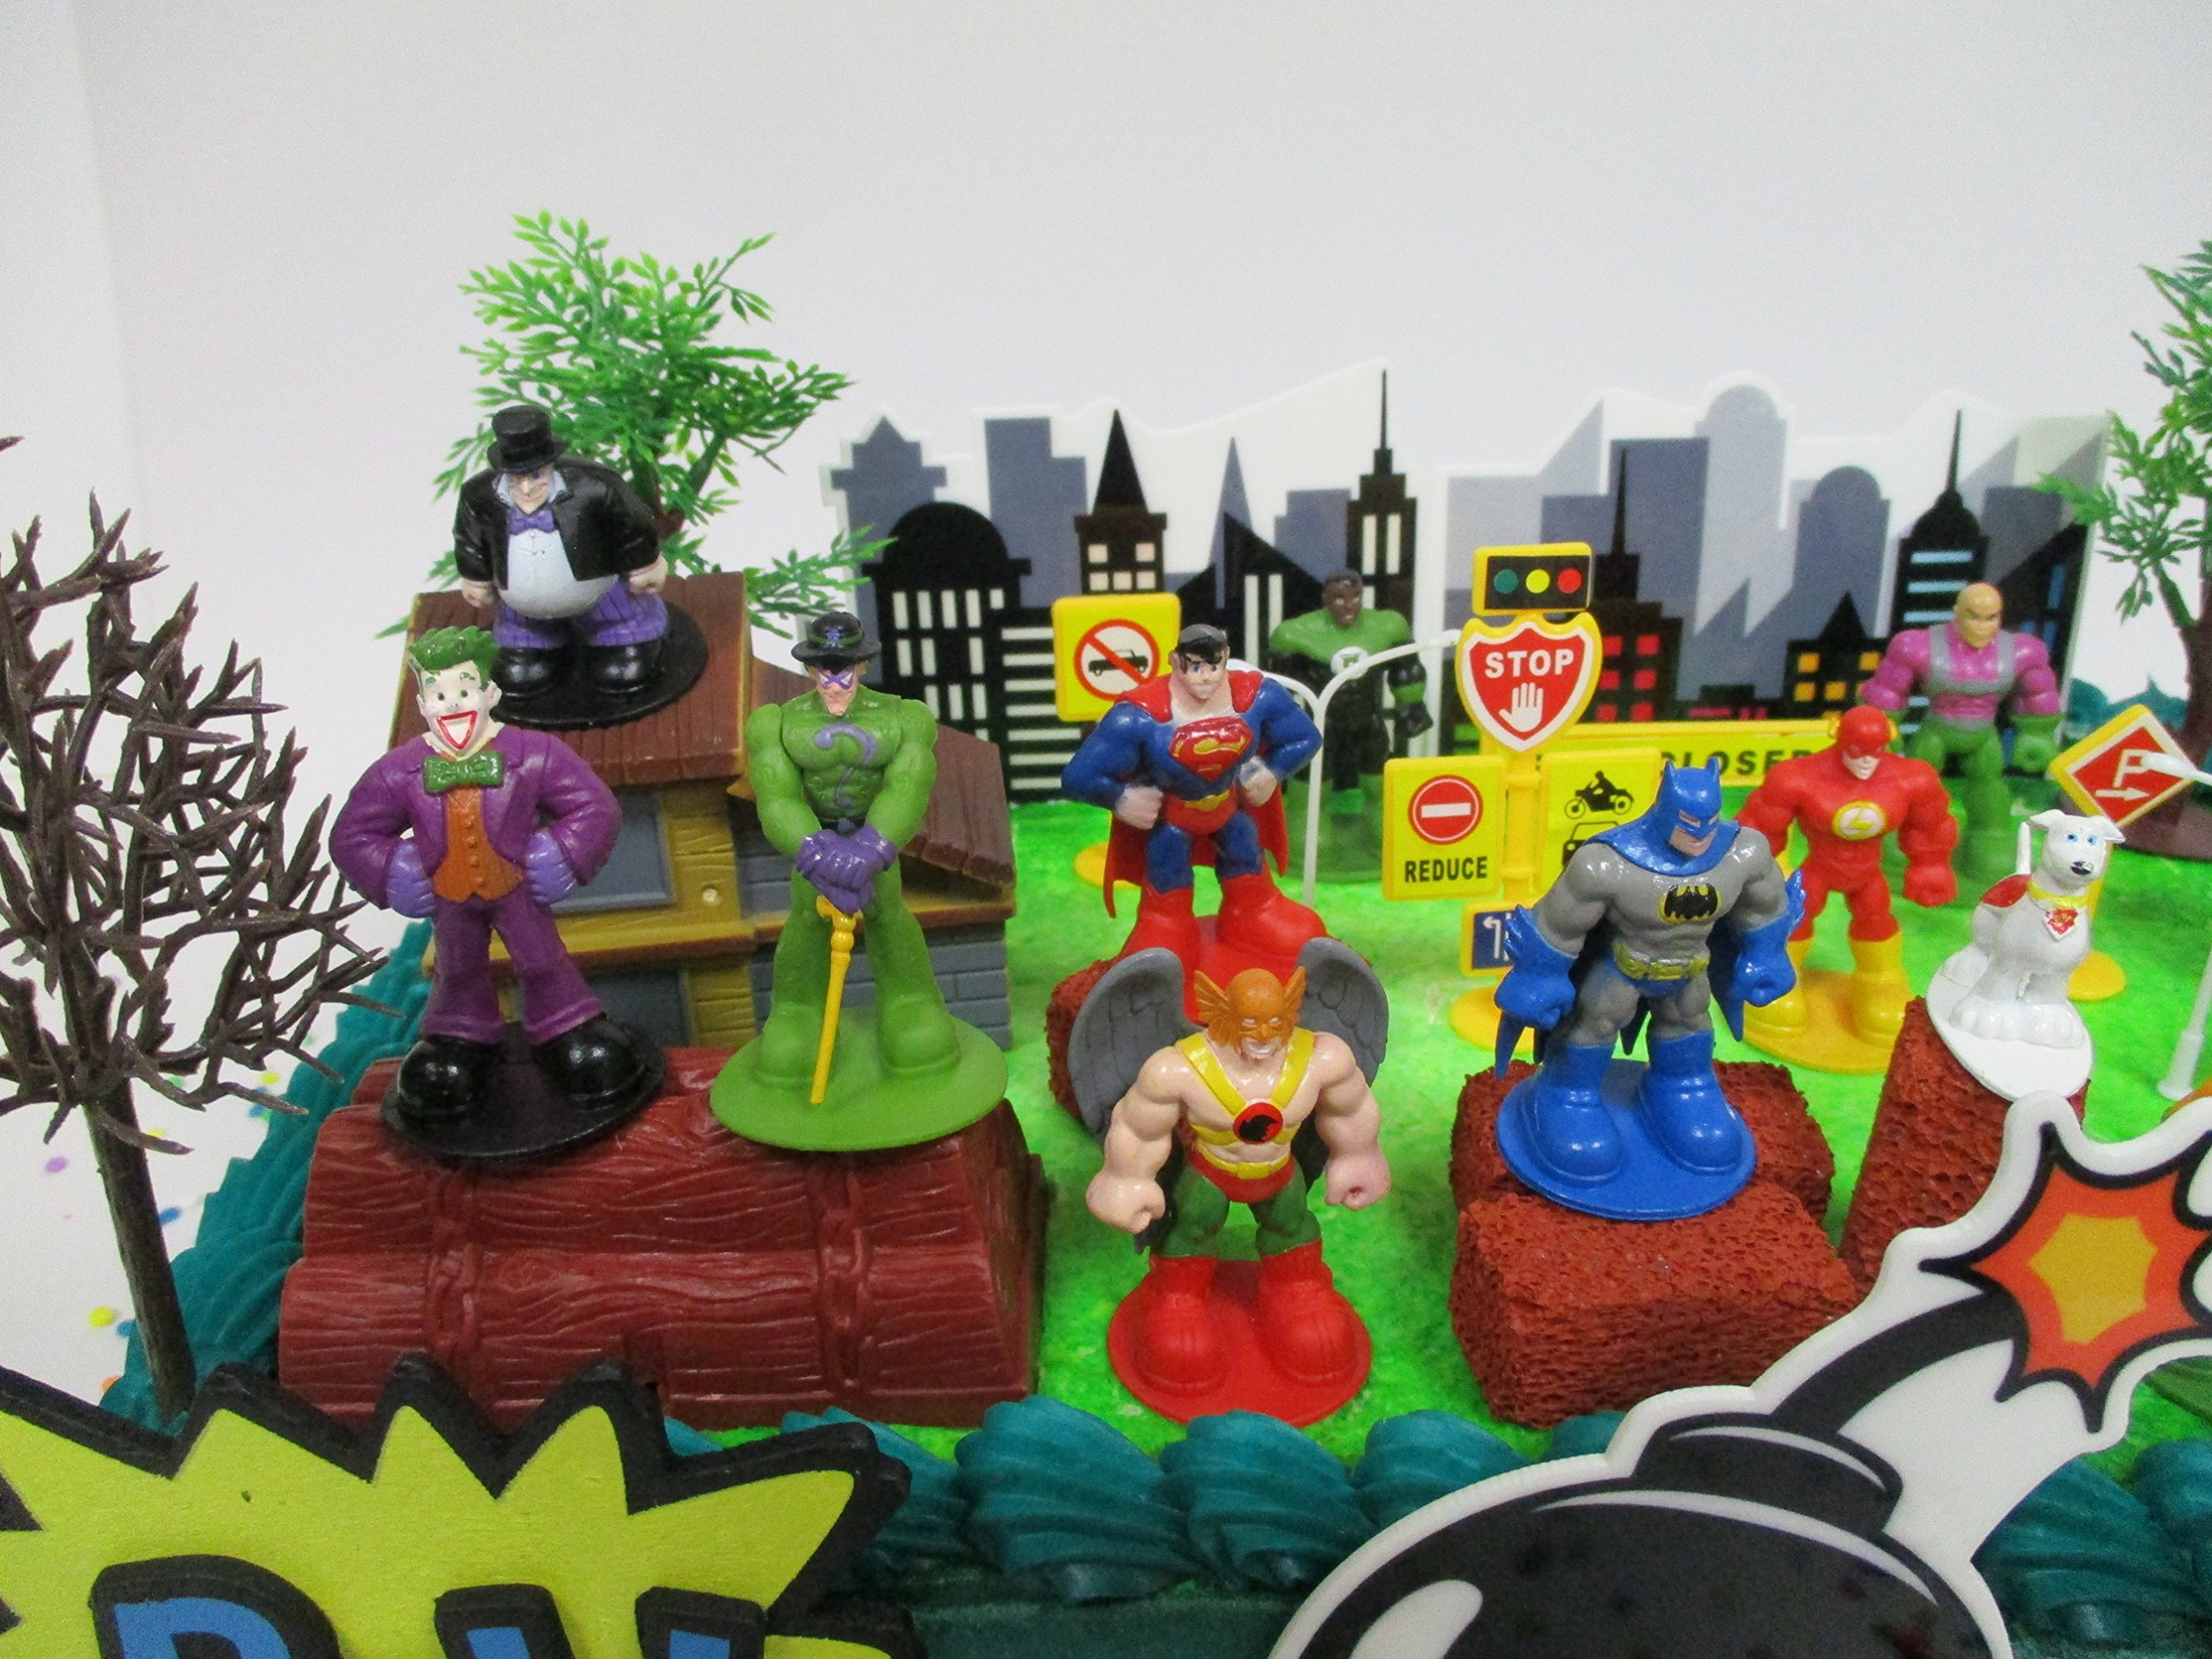 DC Comic Super Friends Birthday Cake Topper Set Featuring Super Hero Crime Fighters and Villains with Decorative Accessories by Kitoo (Image #6)